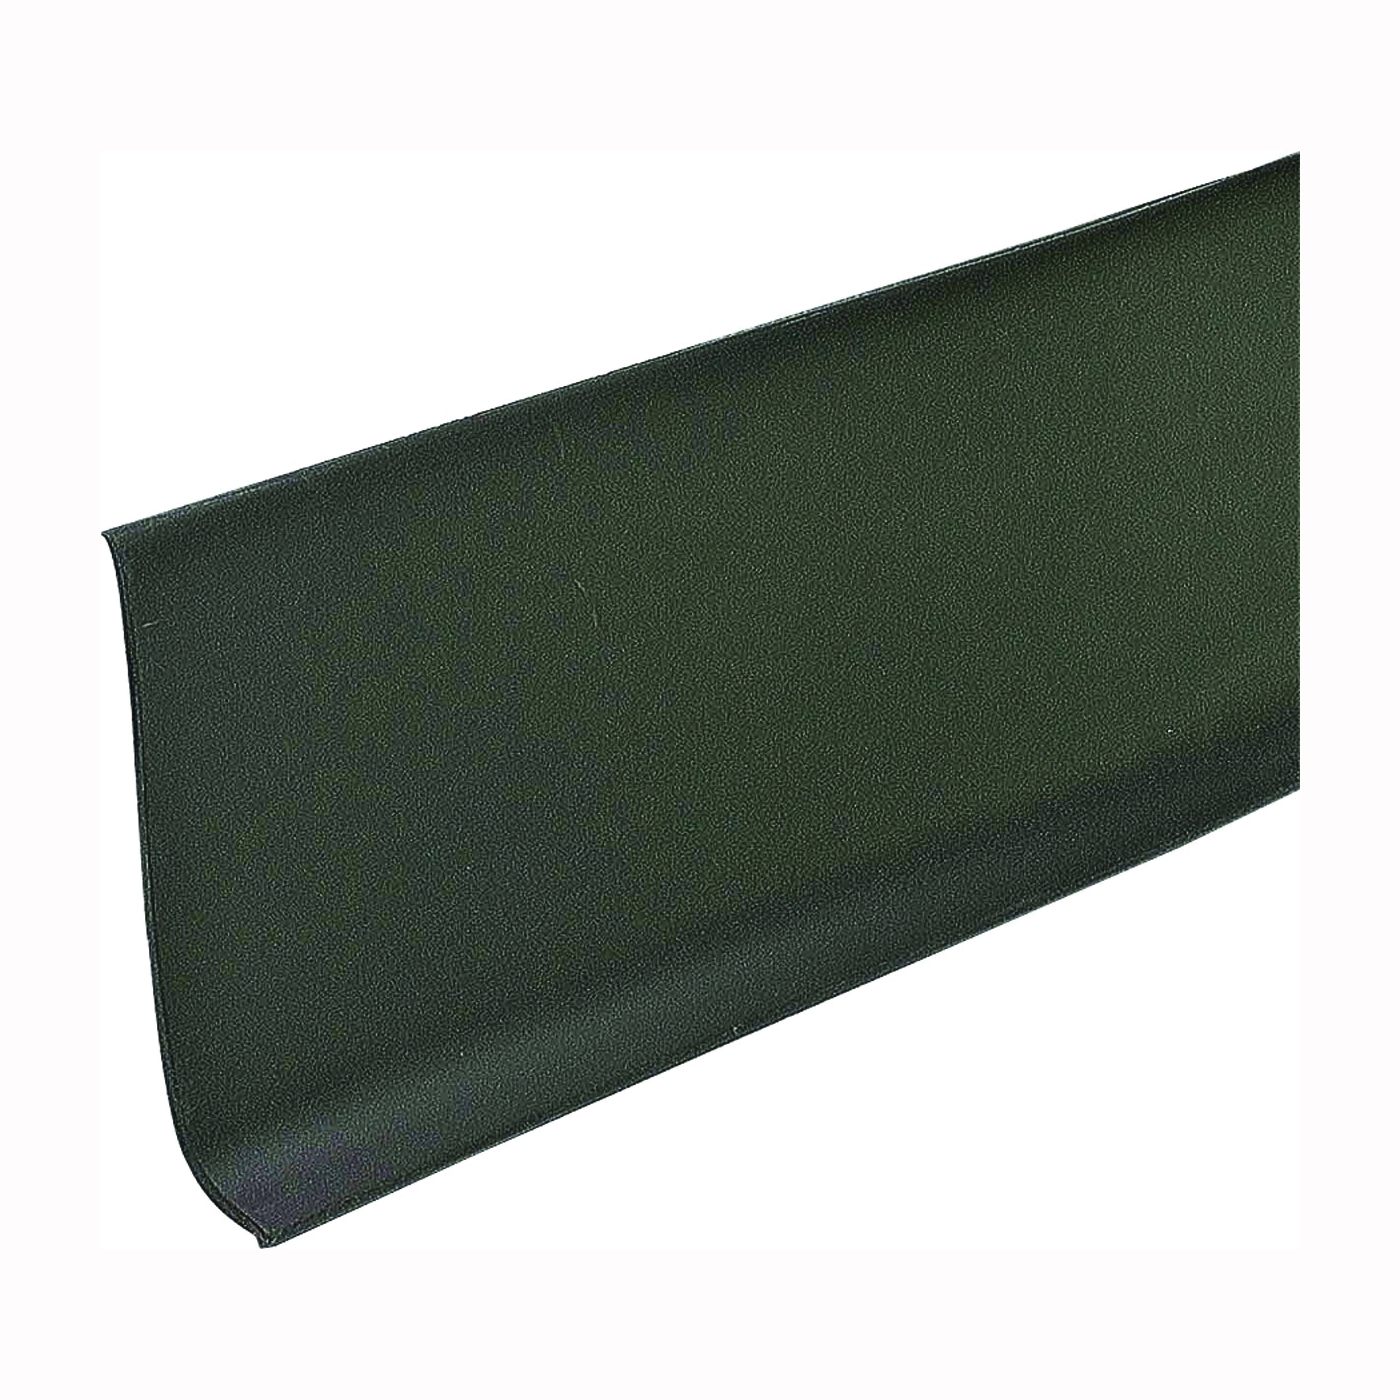 Picture of M-D 23662 Wall Base, 4 ft L, 4 in W, Vinyl, Black